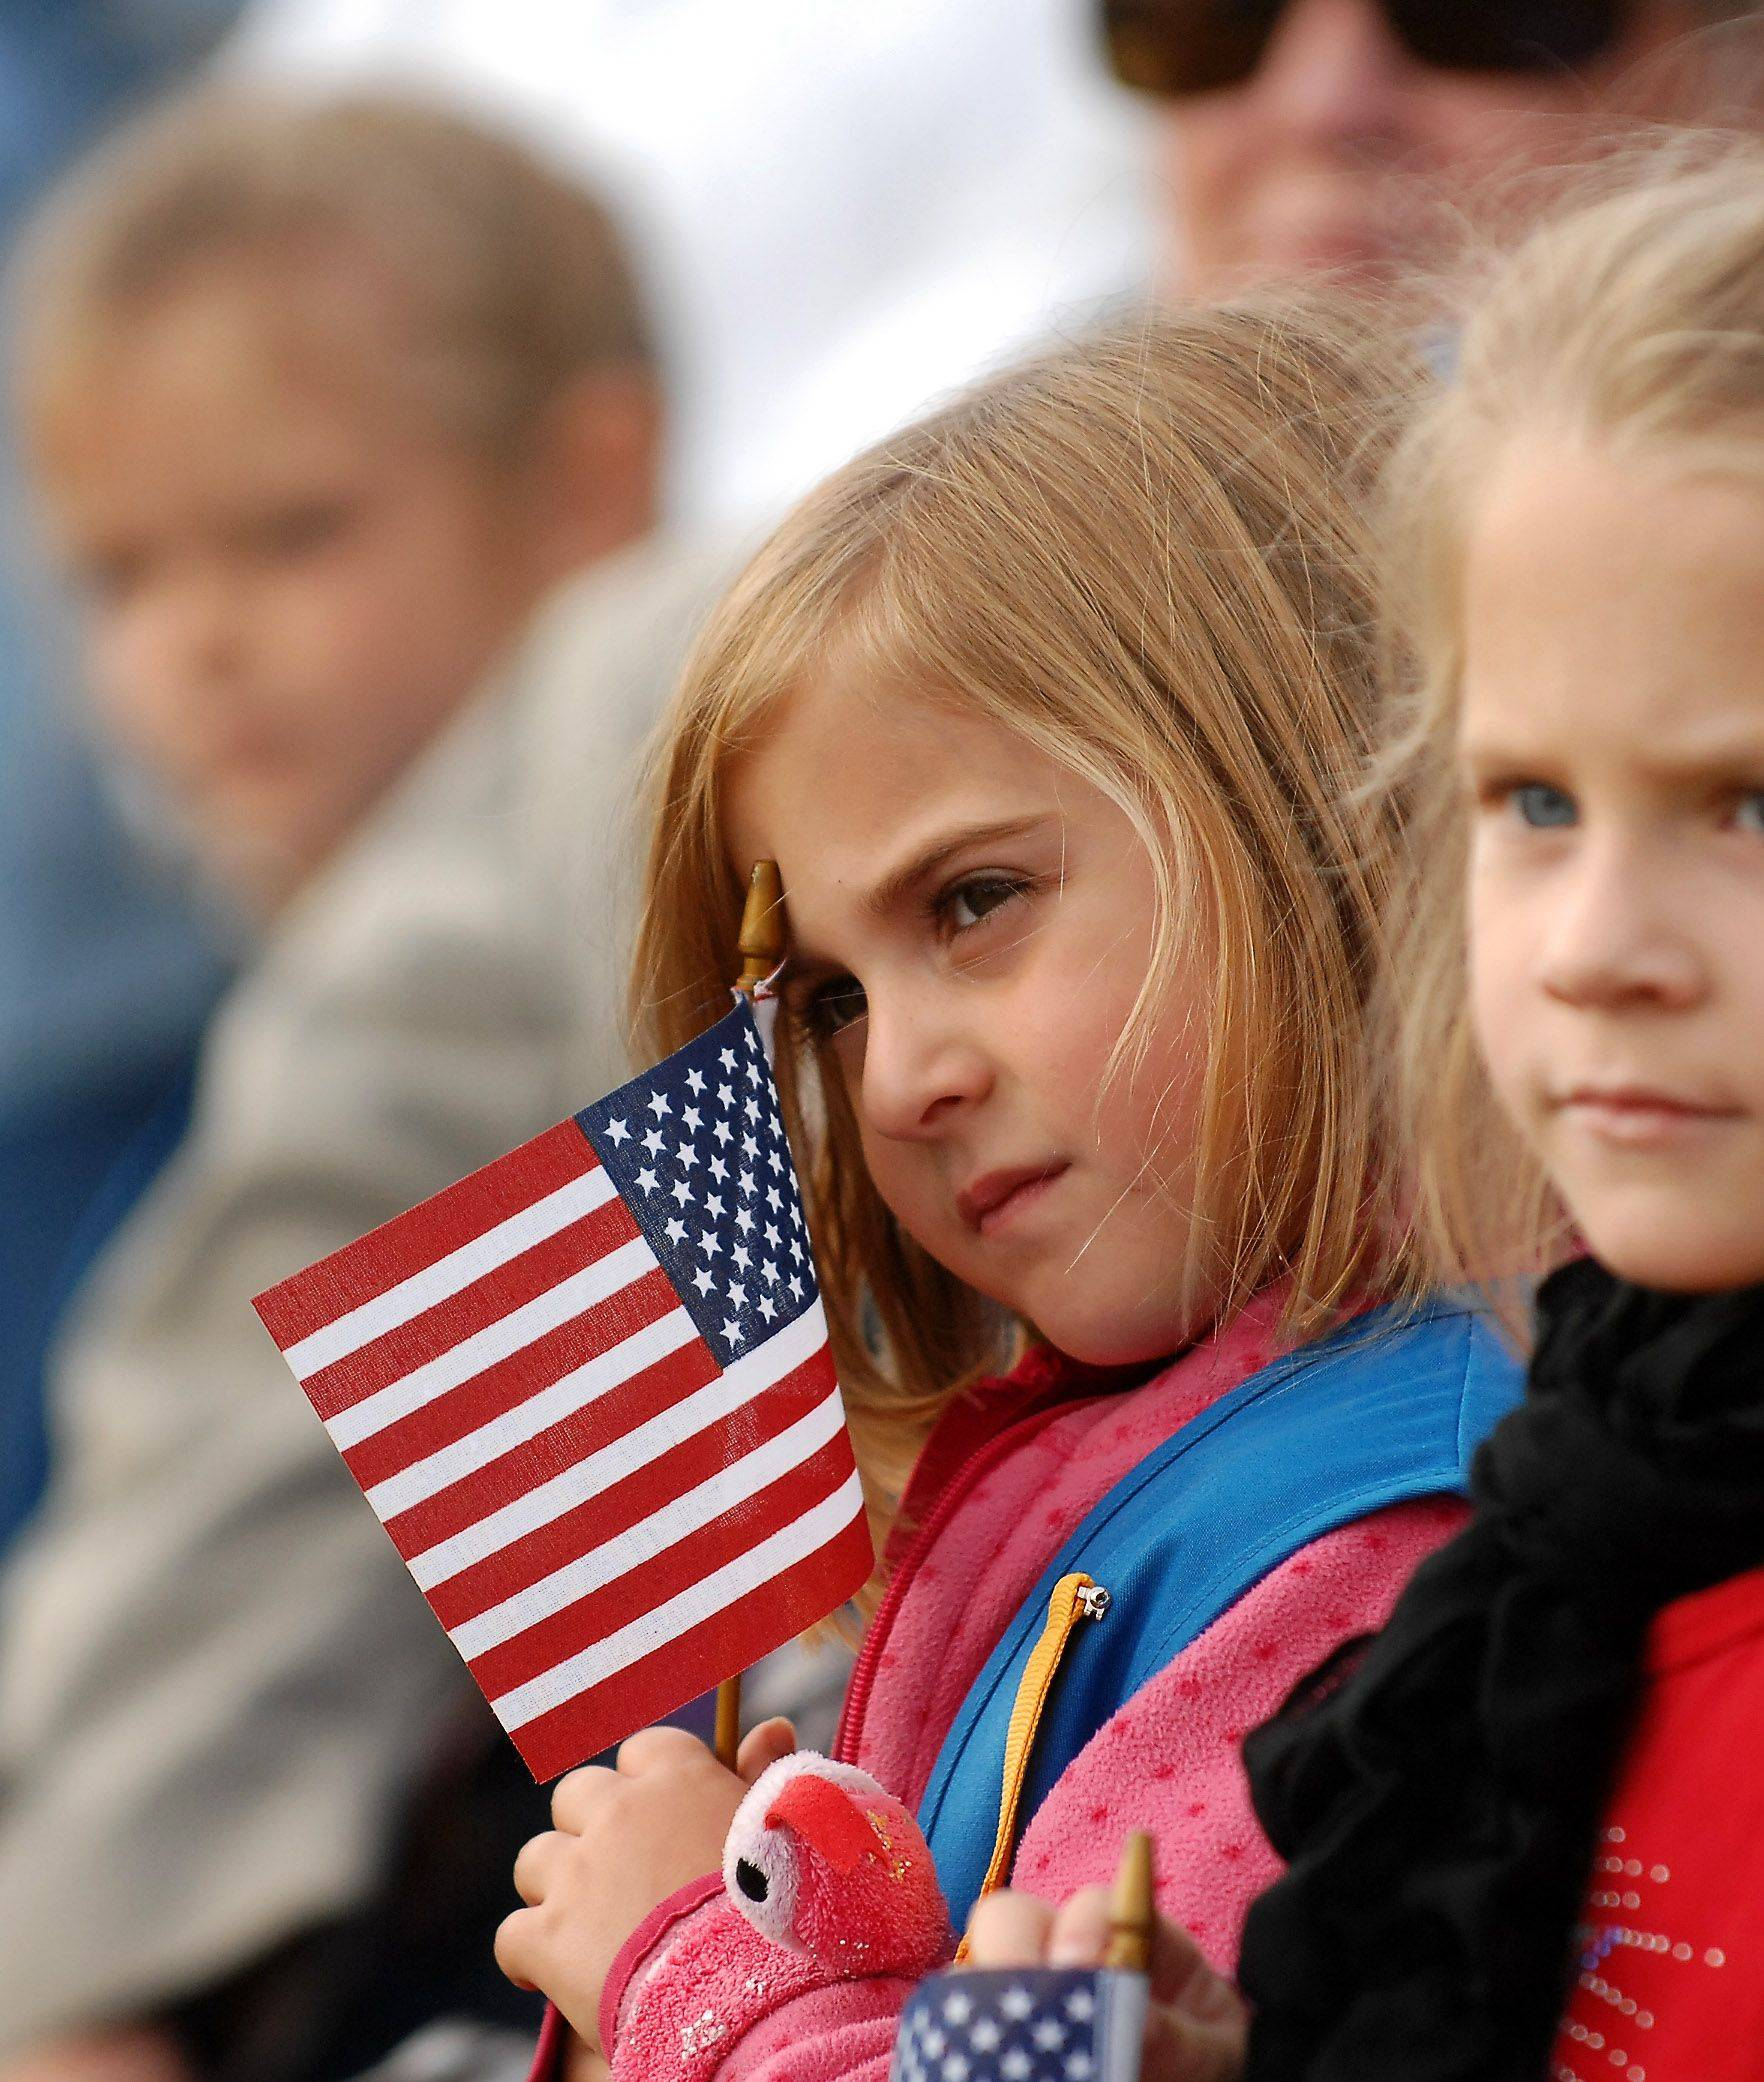 5-year-old Zoey Pozen of Elburn holds a flag as she watches the ceremony during the Elburn Veteran's Day ceremony Thursday.